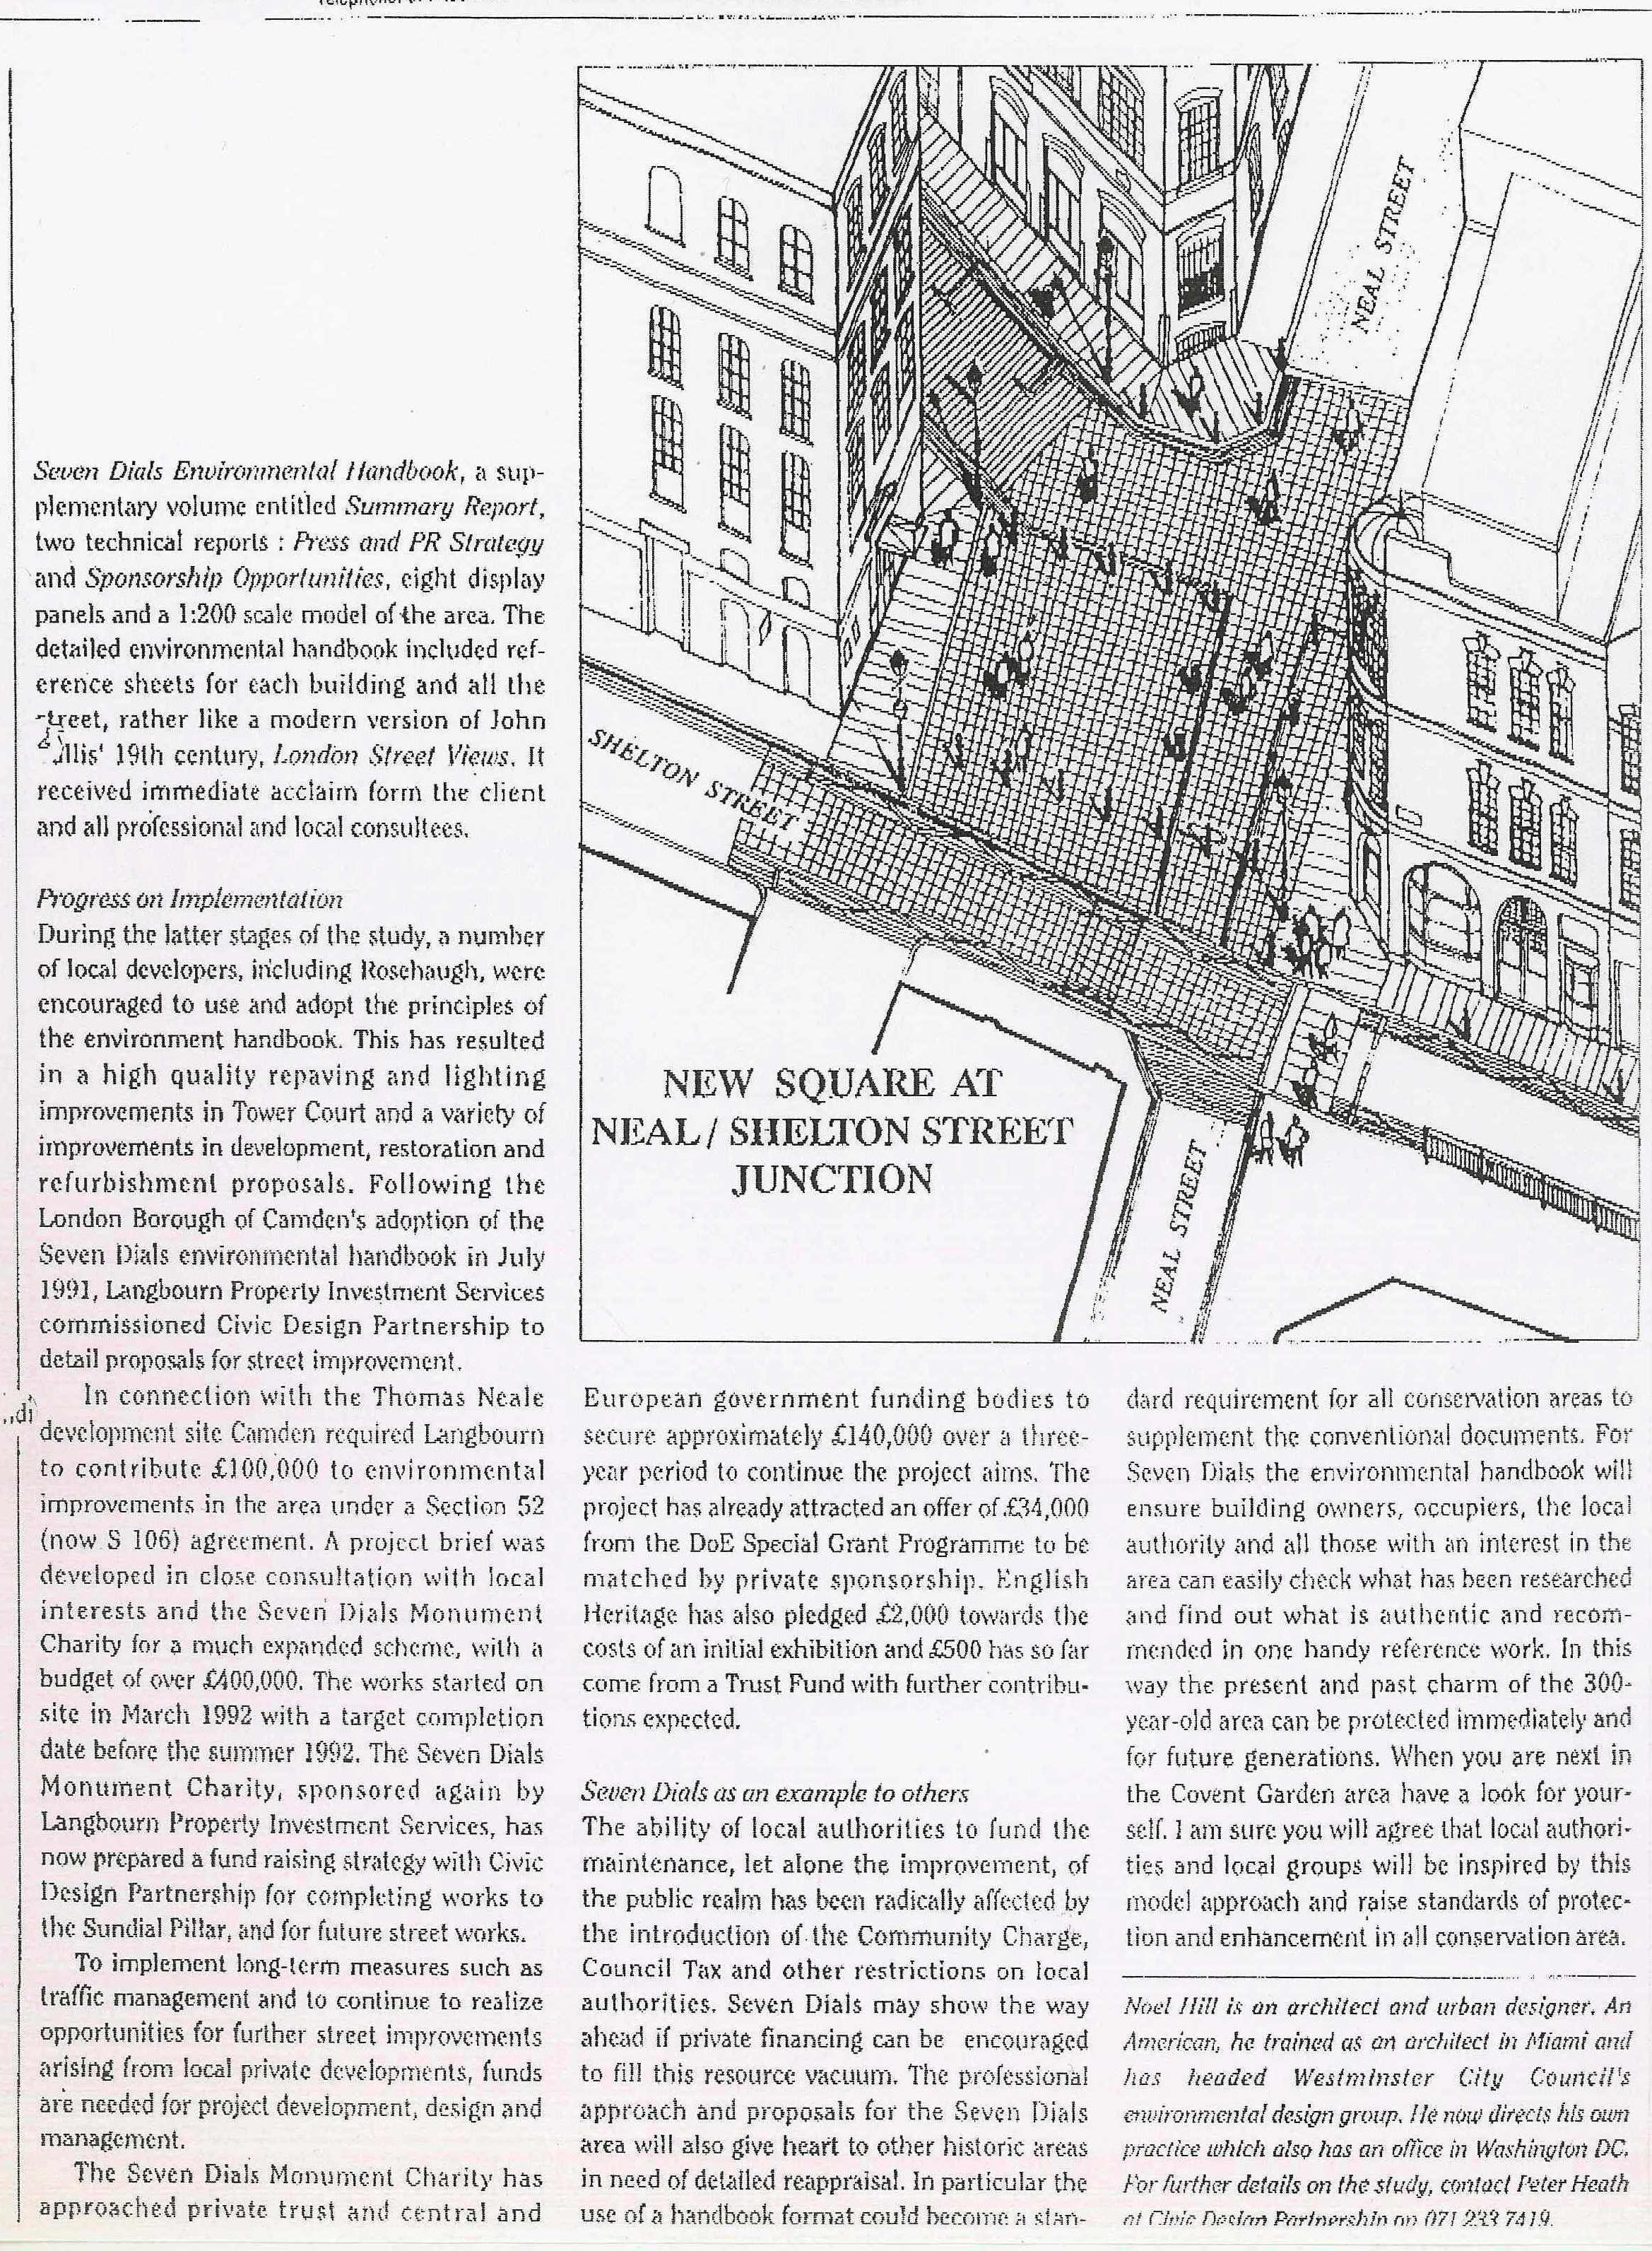 Feature article in Urban Design, May 1992